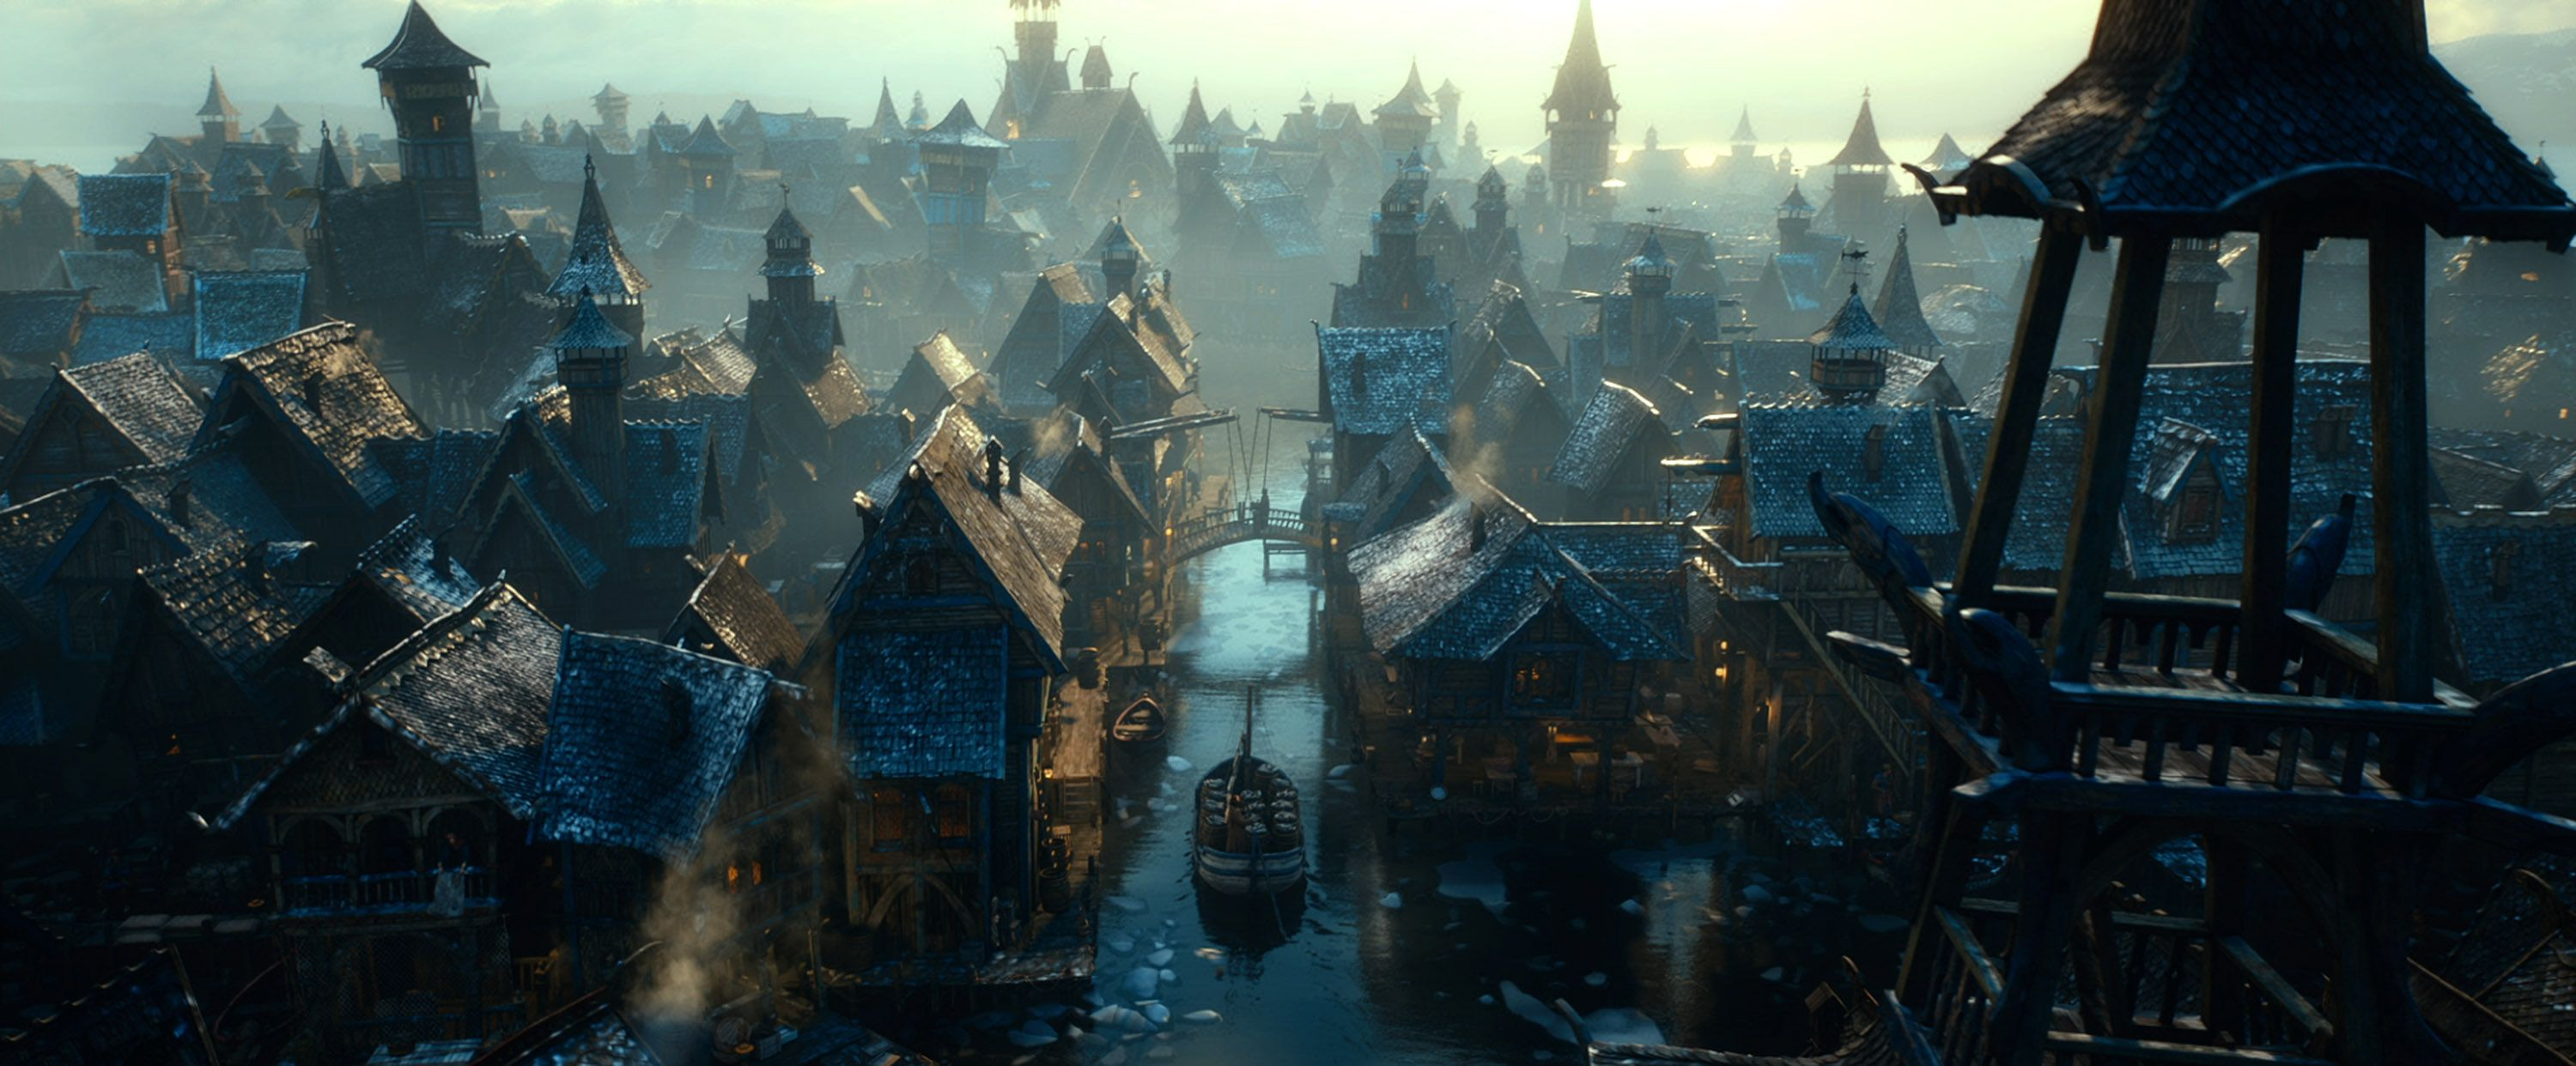 the hobbit: the desolation of smaug images | collider